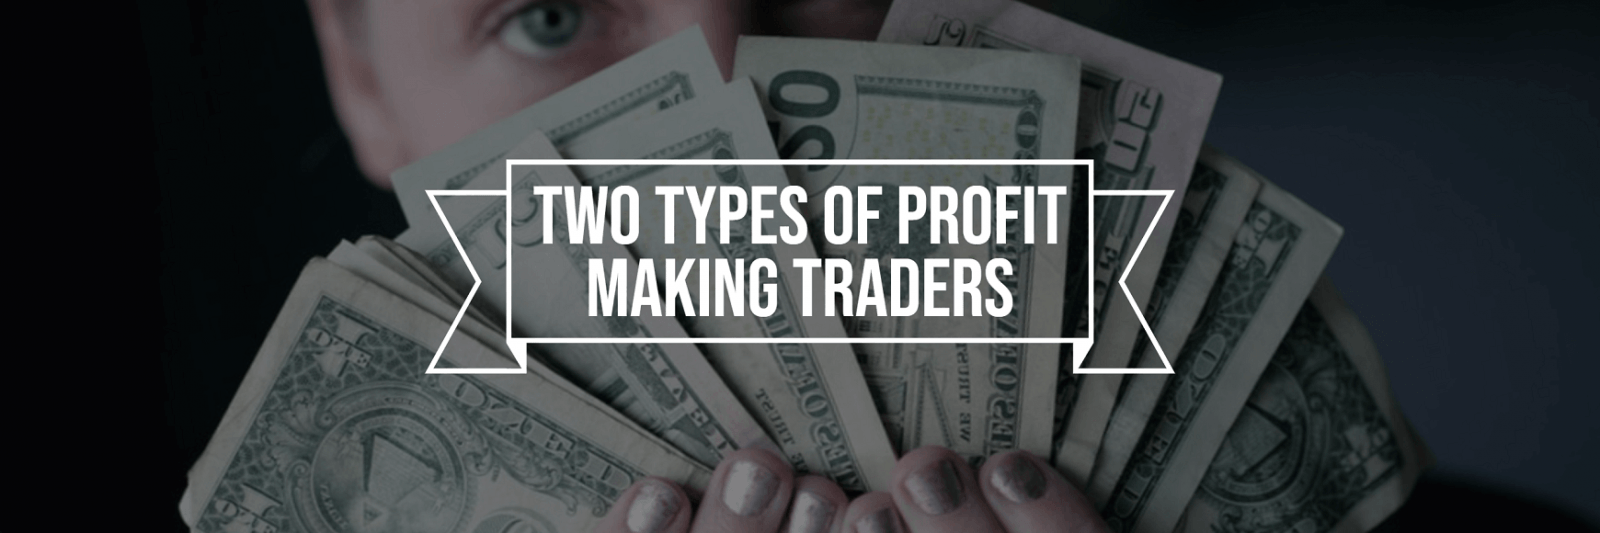 TWO TYPES OF PROFIT MAKING TRADERS